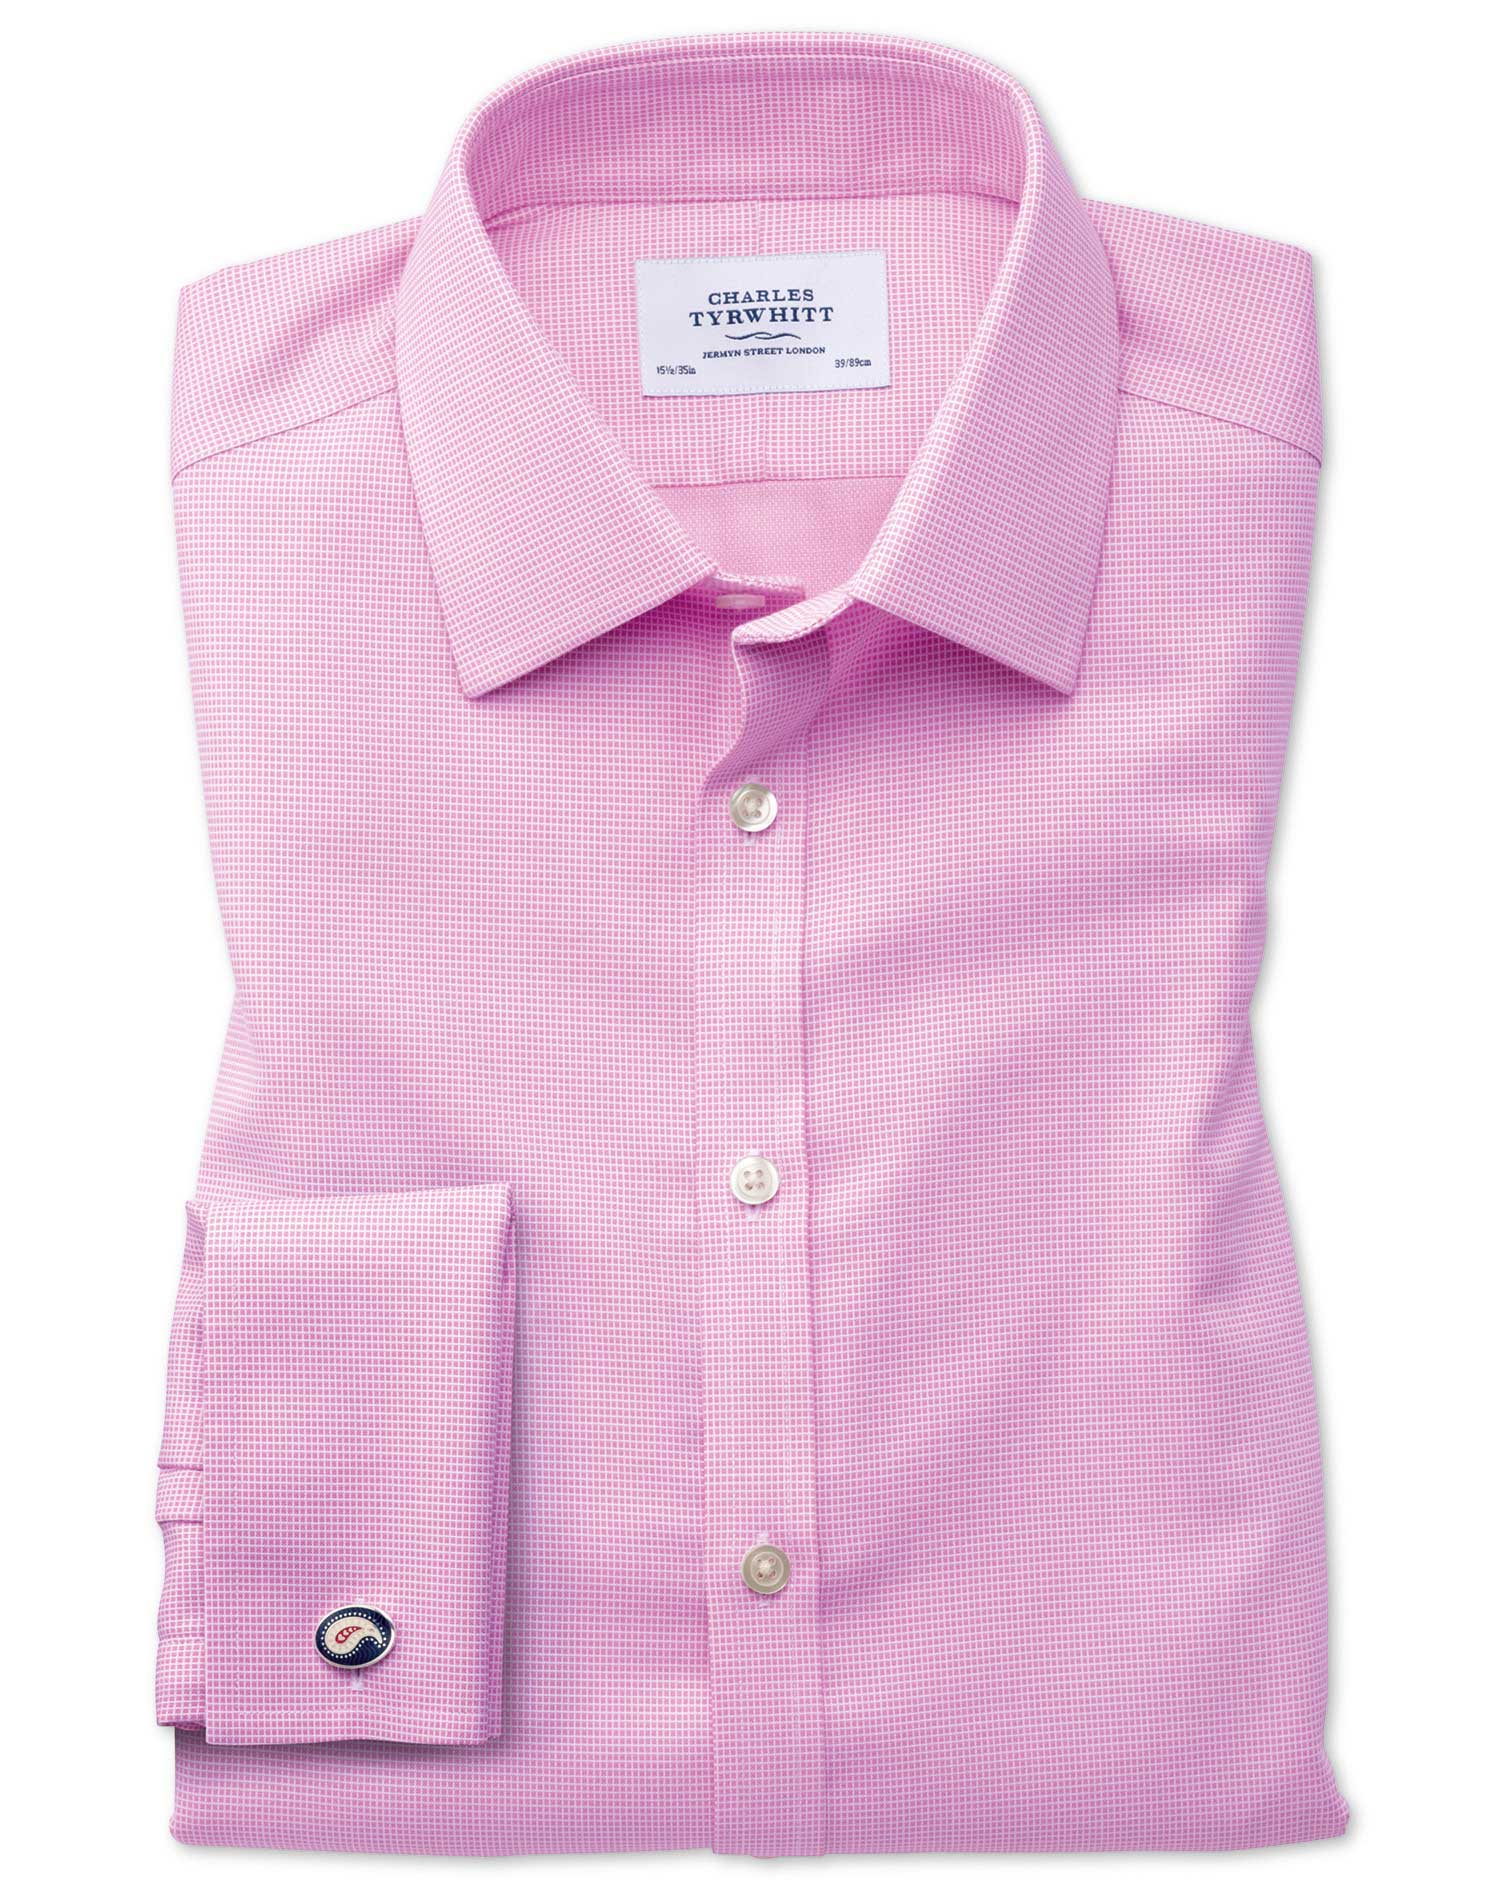 Classic Fit Non-Iron Square Weave Pink Cotton Formal Shirt Single Cuff Size 16/34 by Charles Tyrwhit